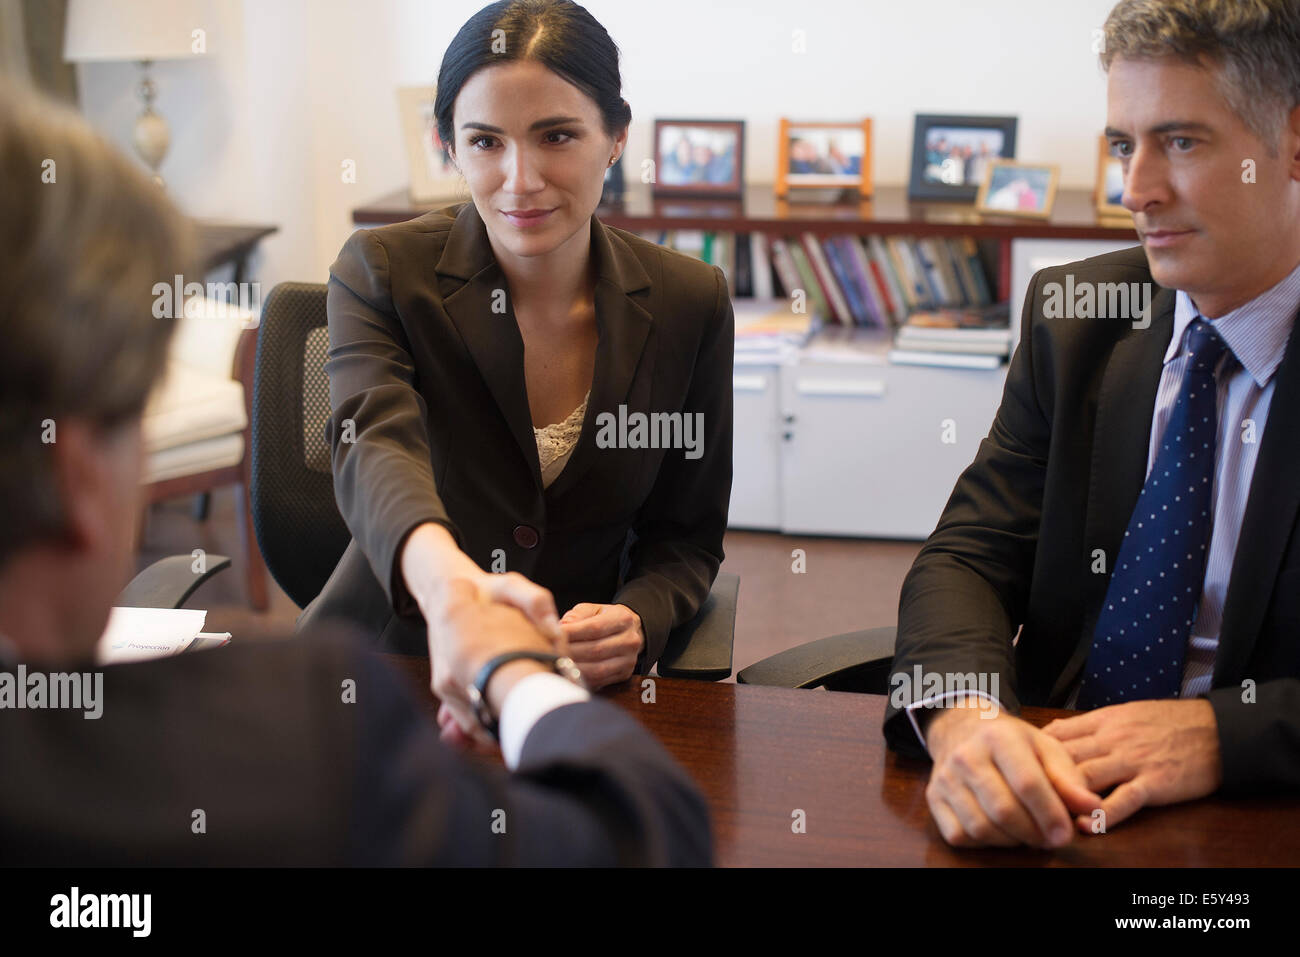 Business meeting, businesswoman shaking hands with associate - Stock Image